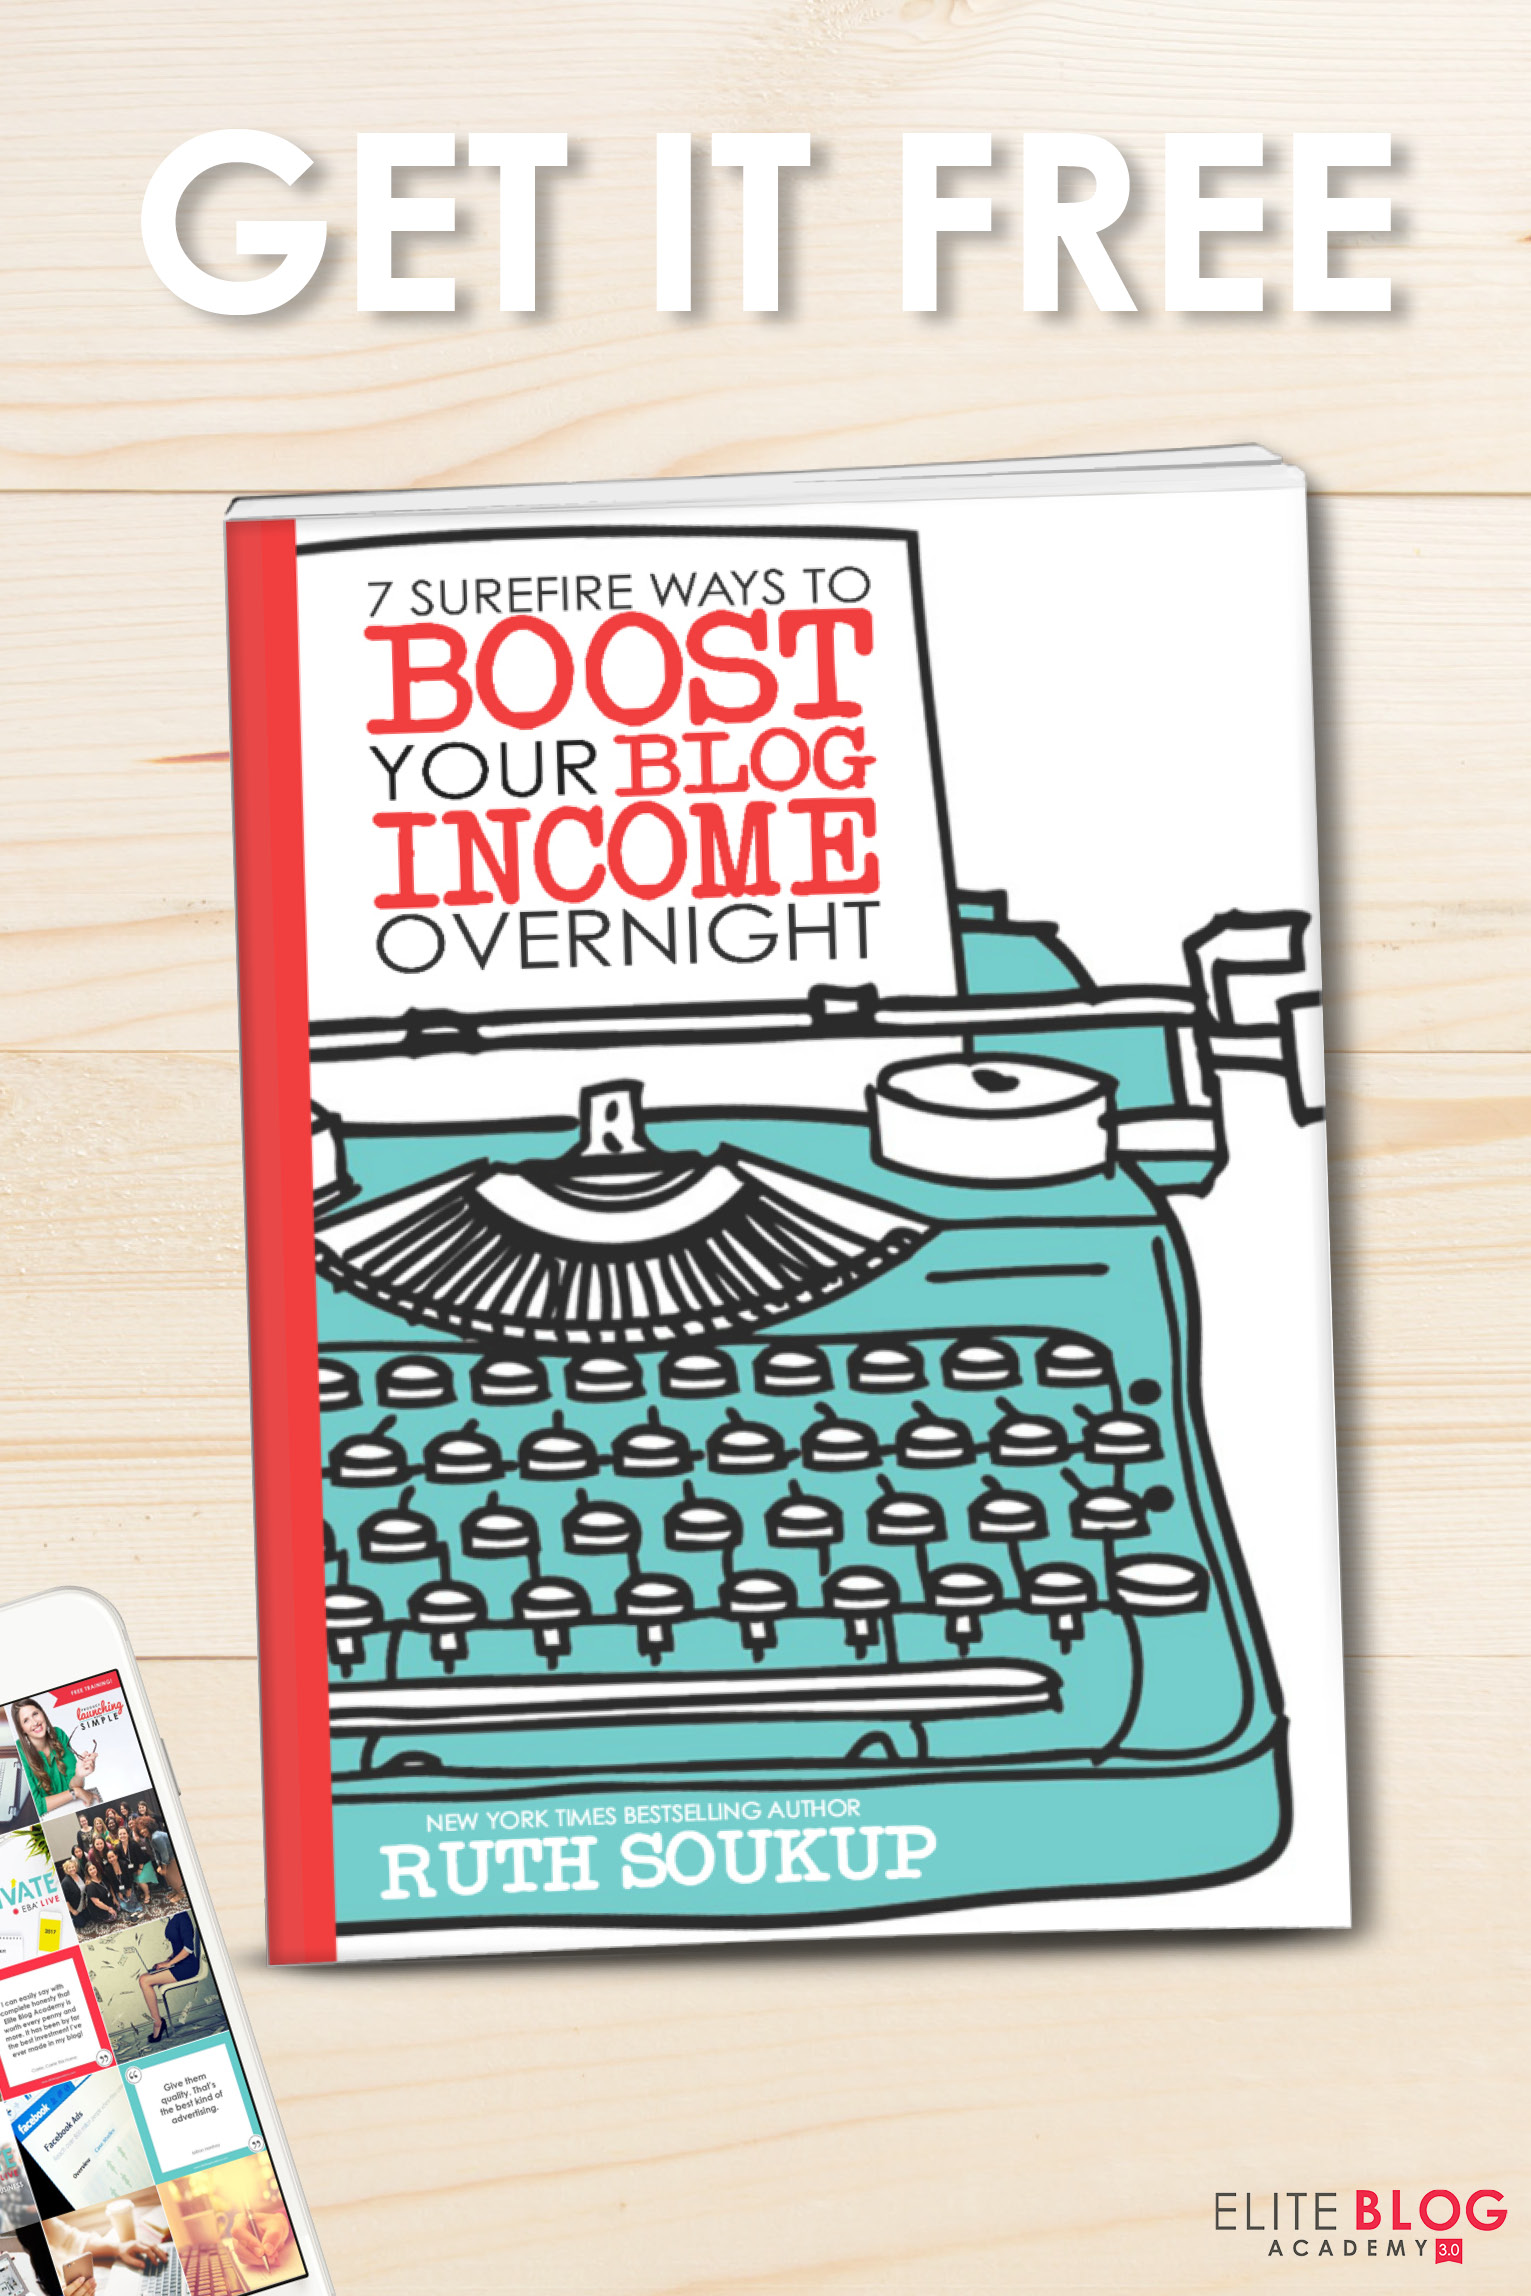 7 Surefire Ways To Boost Your Blog Income Overnight-Pinterest.jpg